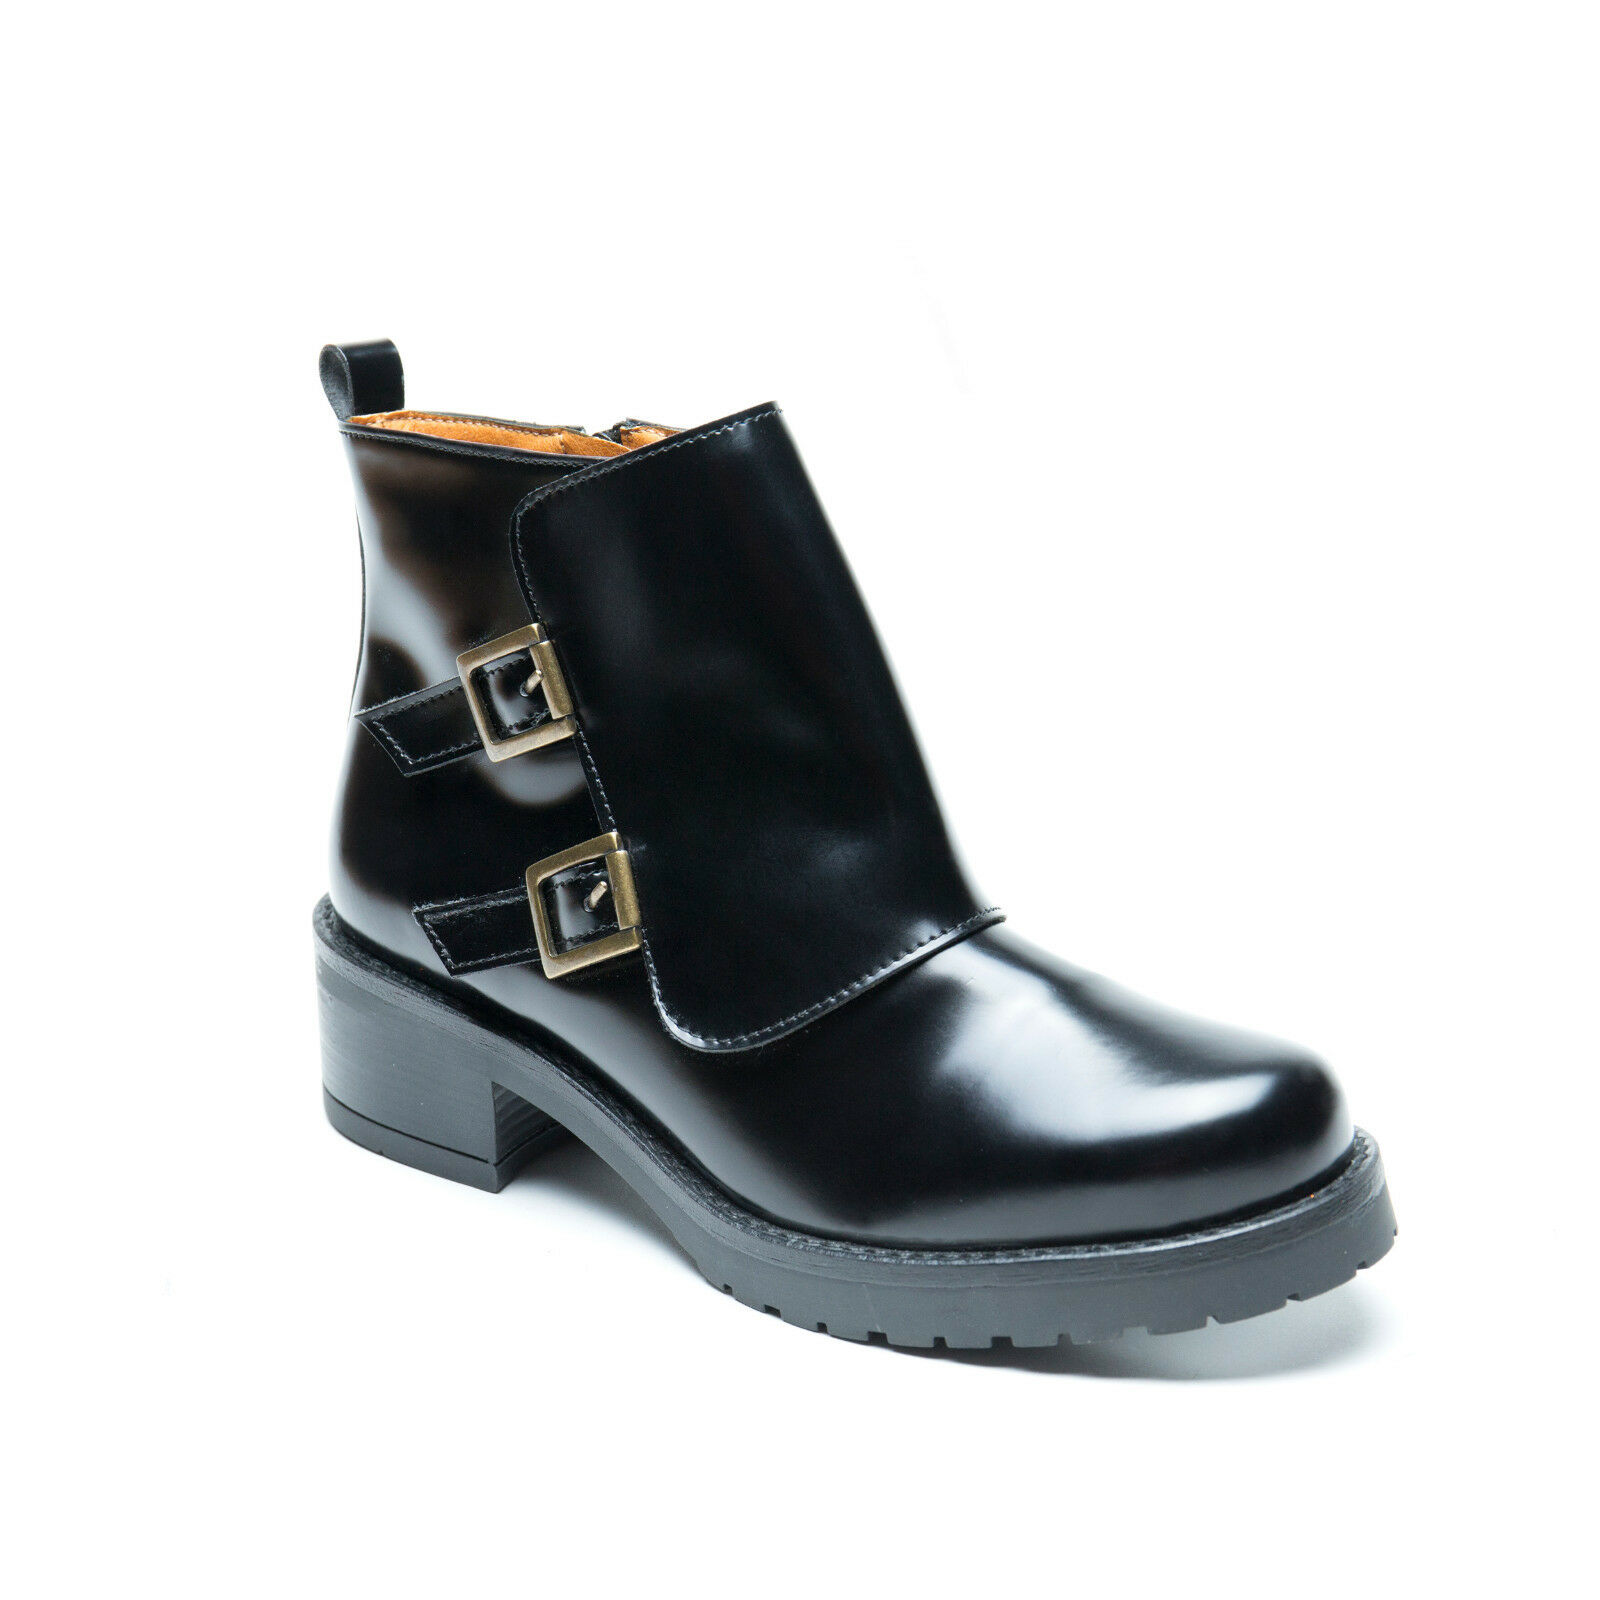 nae - Vegan Boots with Tight Wrap Closure by Two Ribbons Eco Bright Black Botas